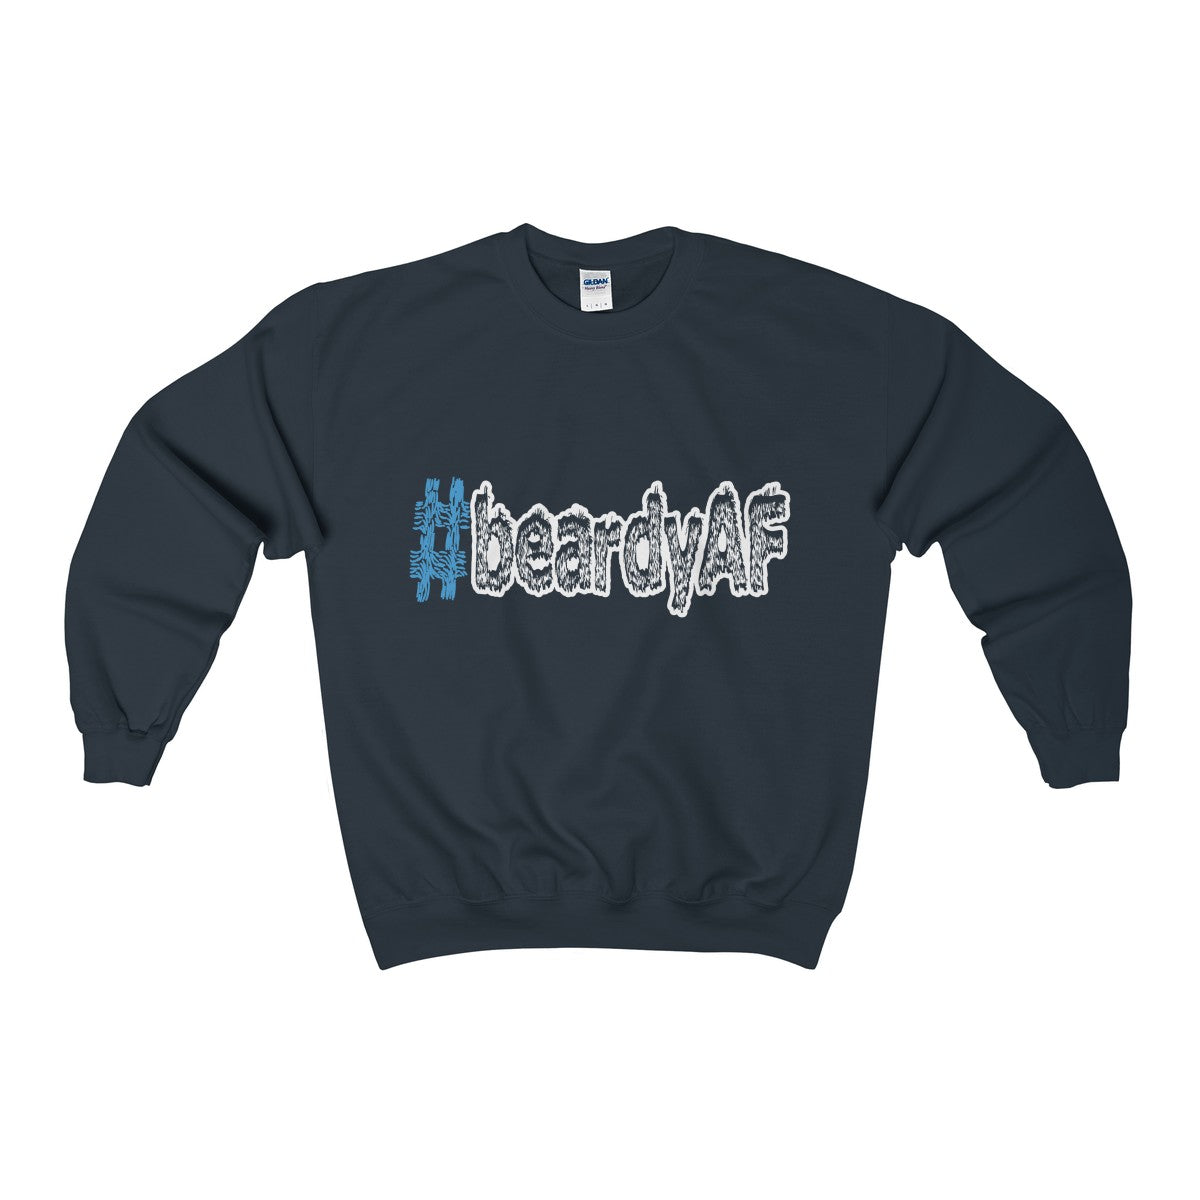 beardyAF hashtag #beardyAF men's unisex sweatshirt Nerdedness